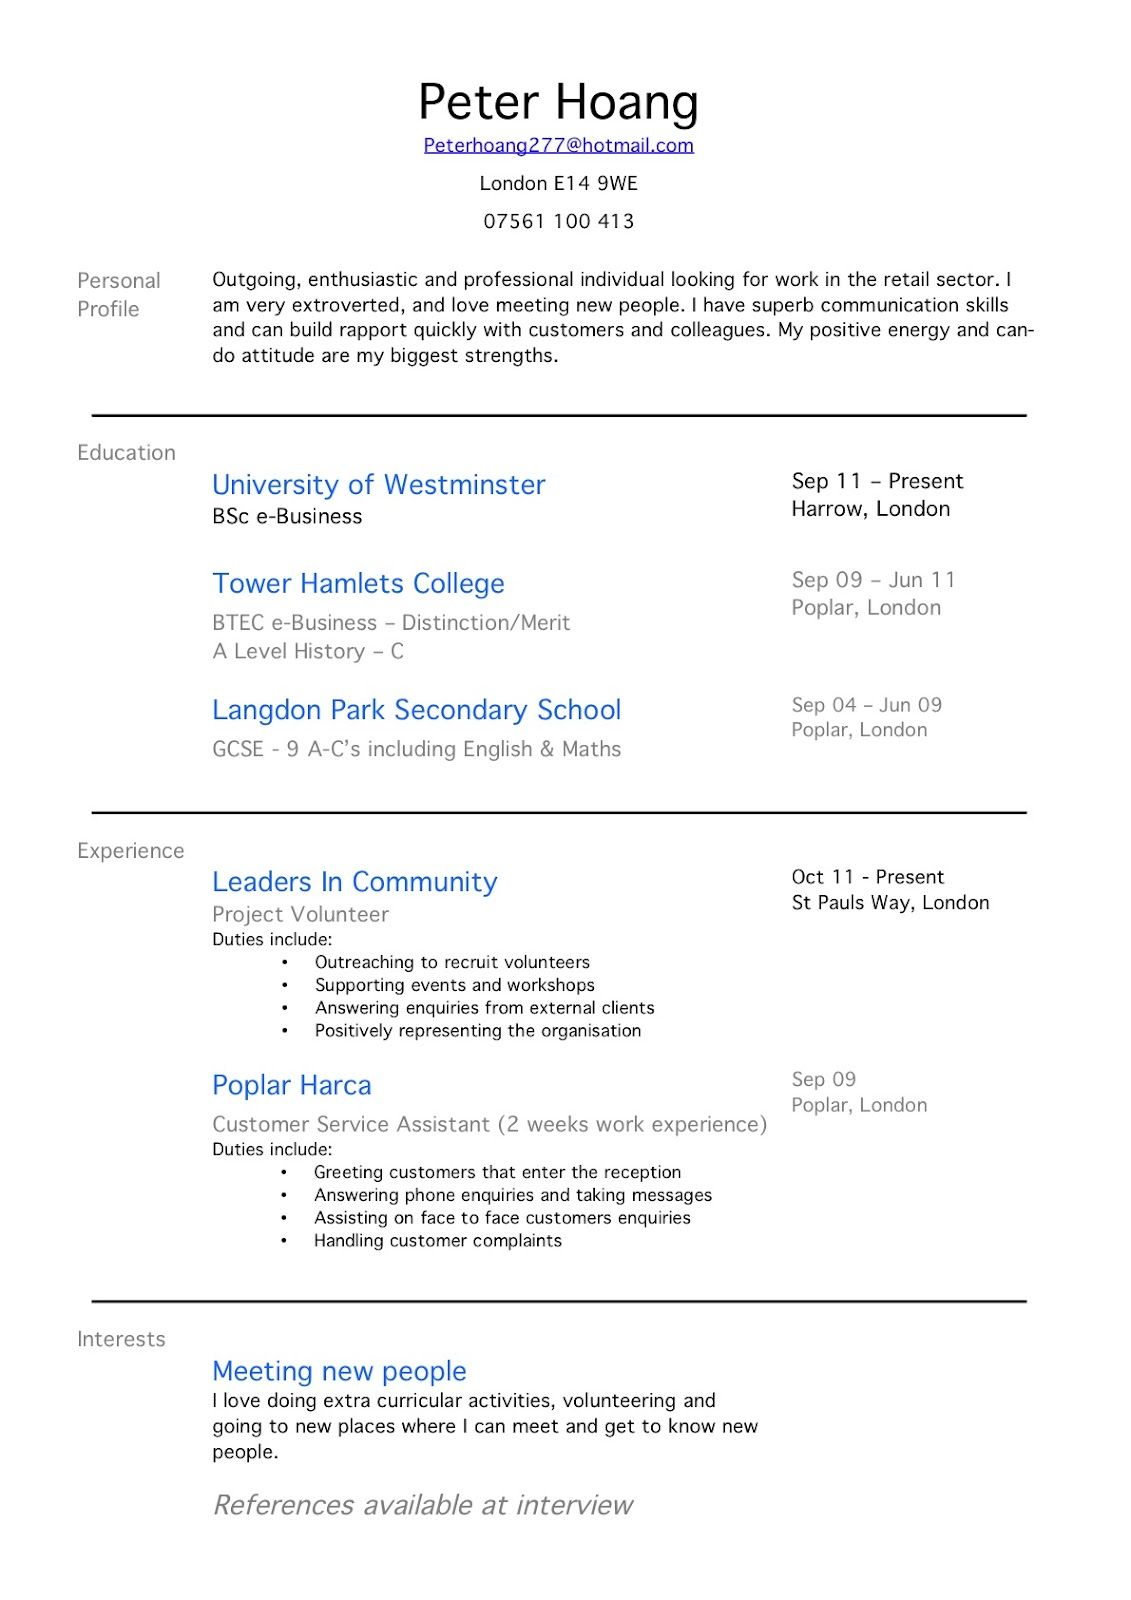 Outstanding Resumes Fascinating Outstanding Cv Template #3  Templates For Motivation Letter .